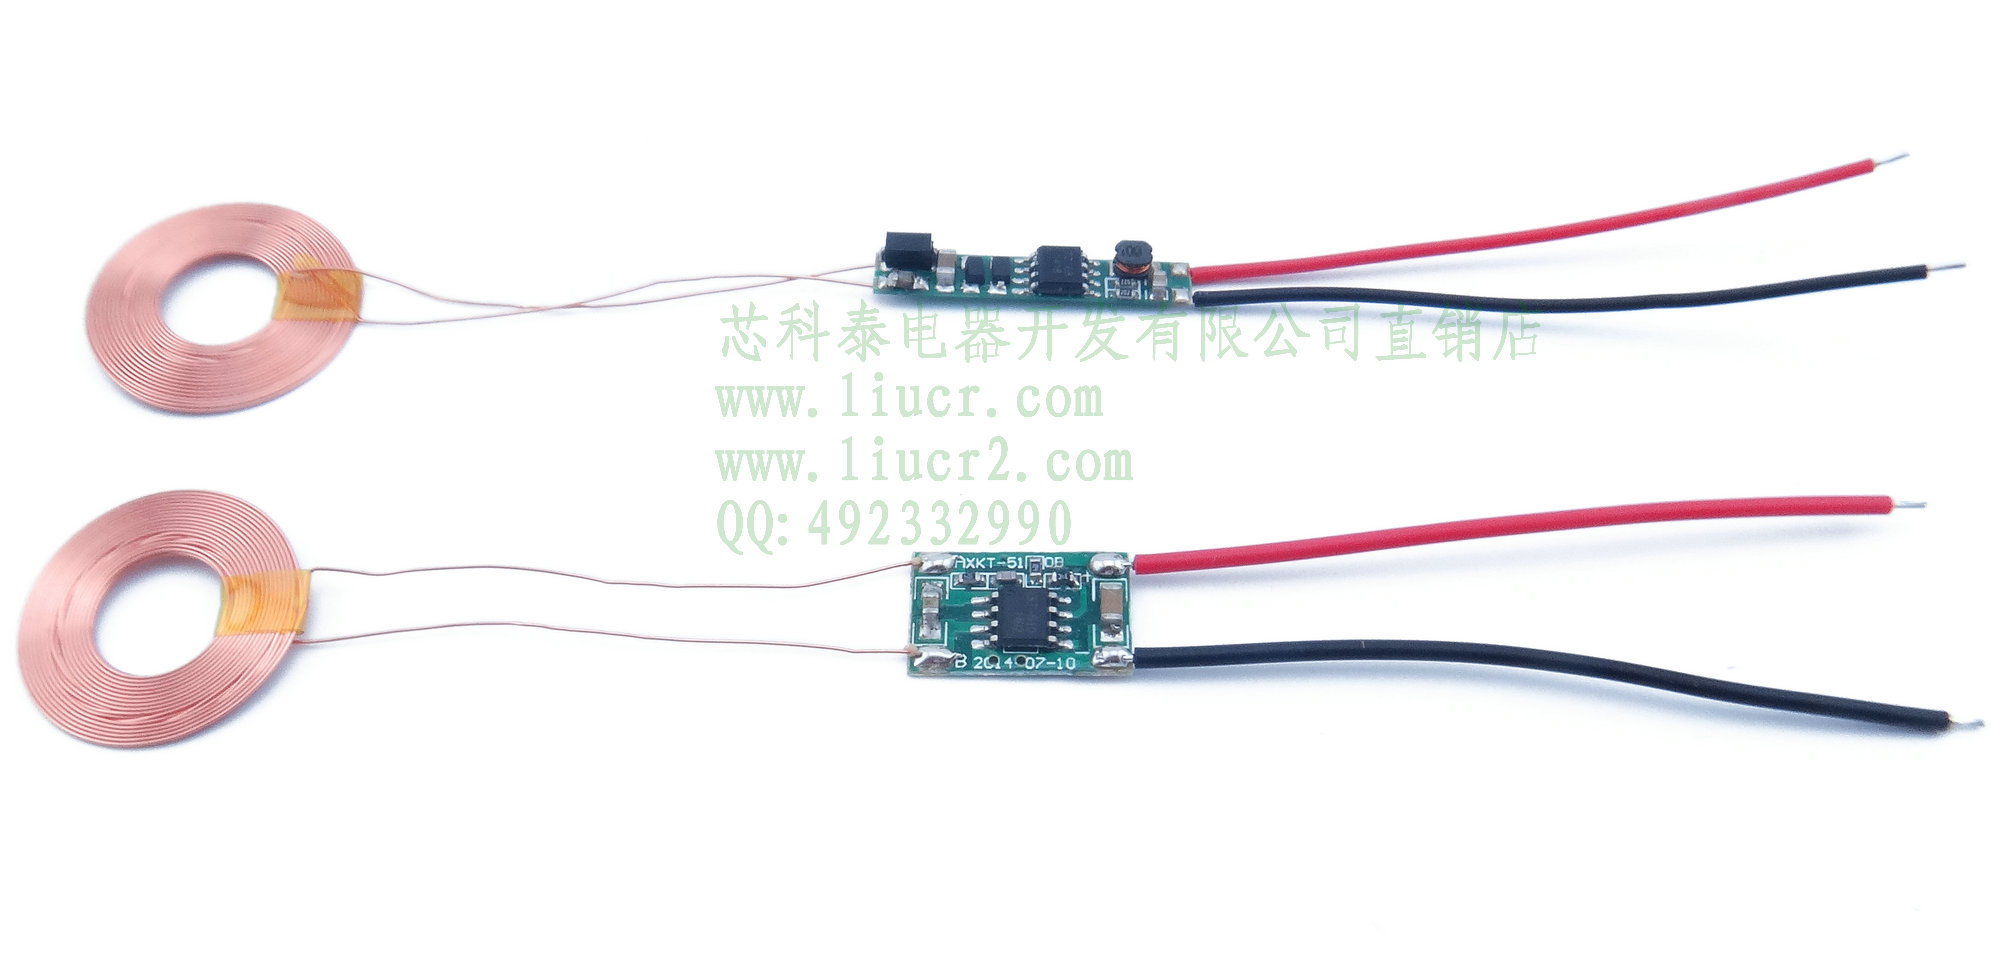 Usd 1170 12v20mm Small Coil Wireless Charging Power Supply Circuit Module Xkt 510 Chip Scheme Xkt510